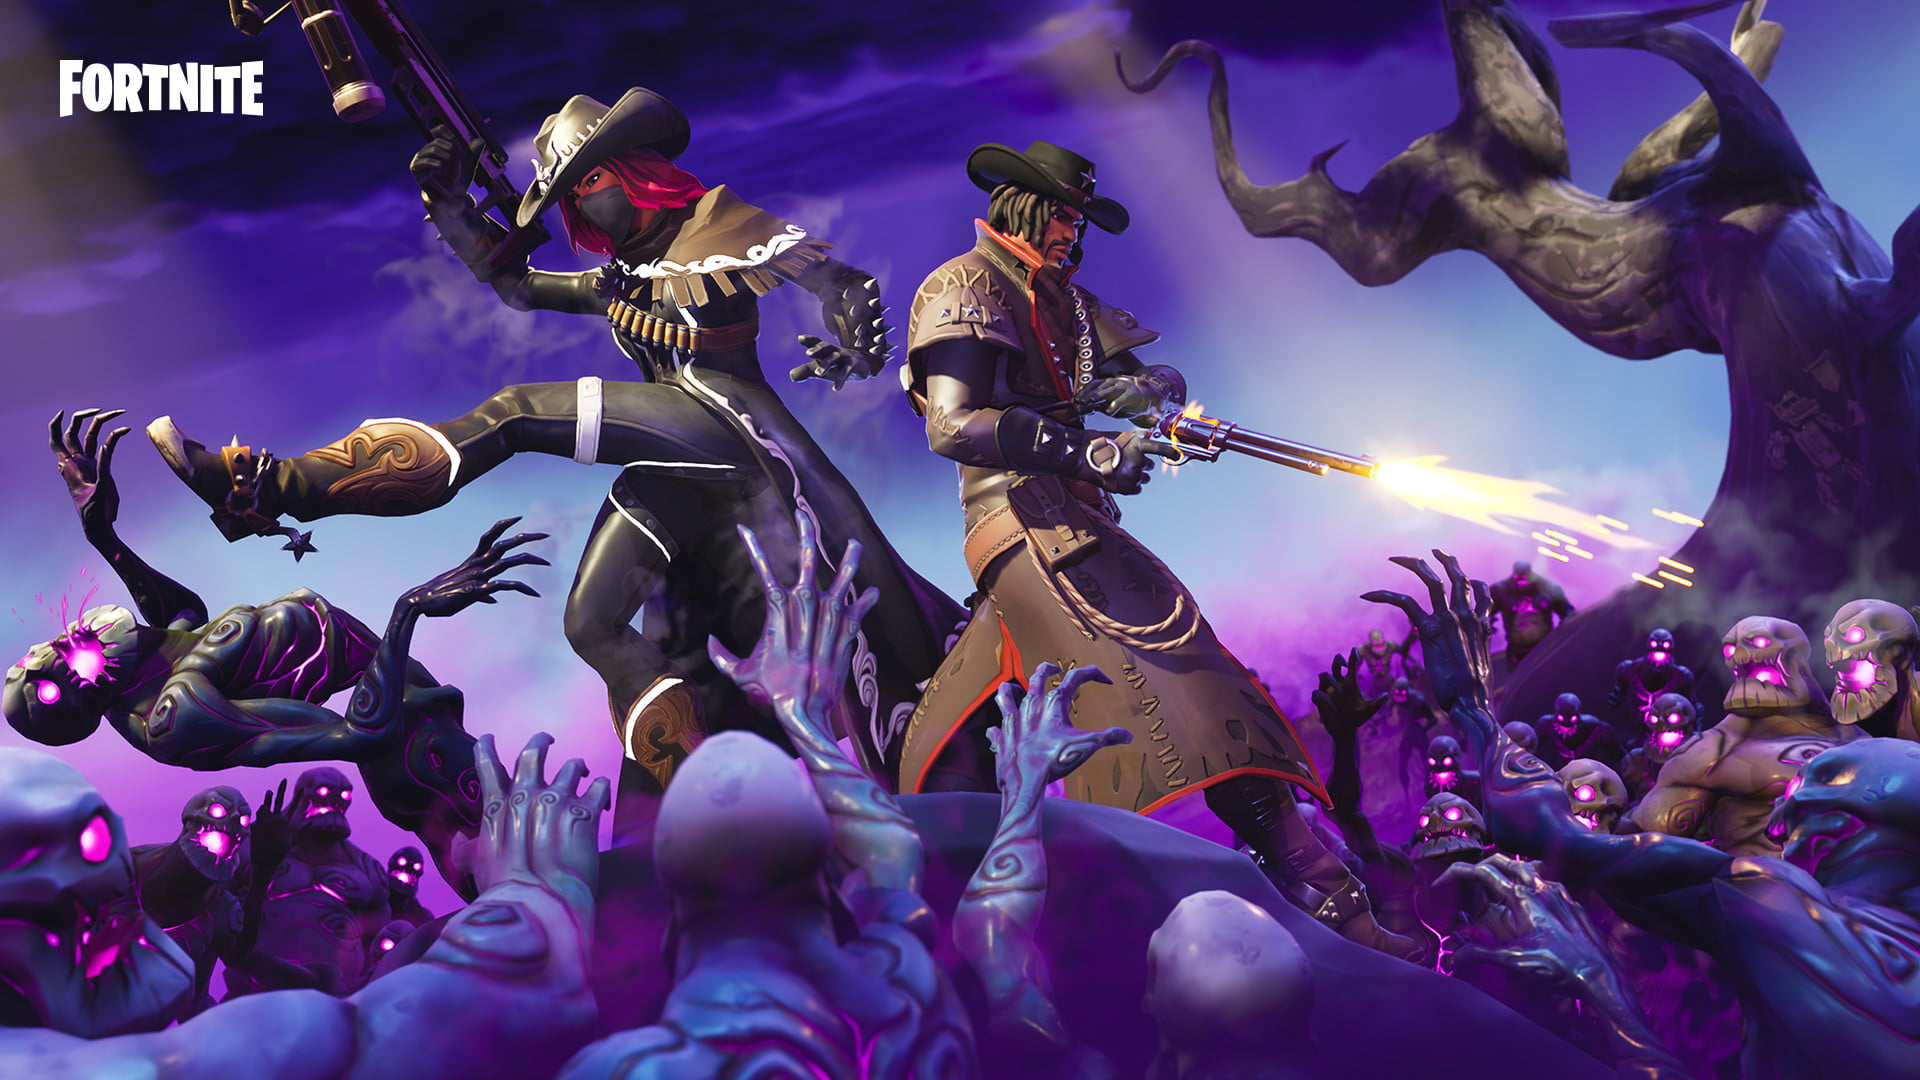 Fortnite 6 22 Adds Heavy AR and Team Teror Mode | Digital Trends